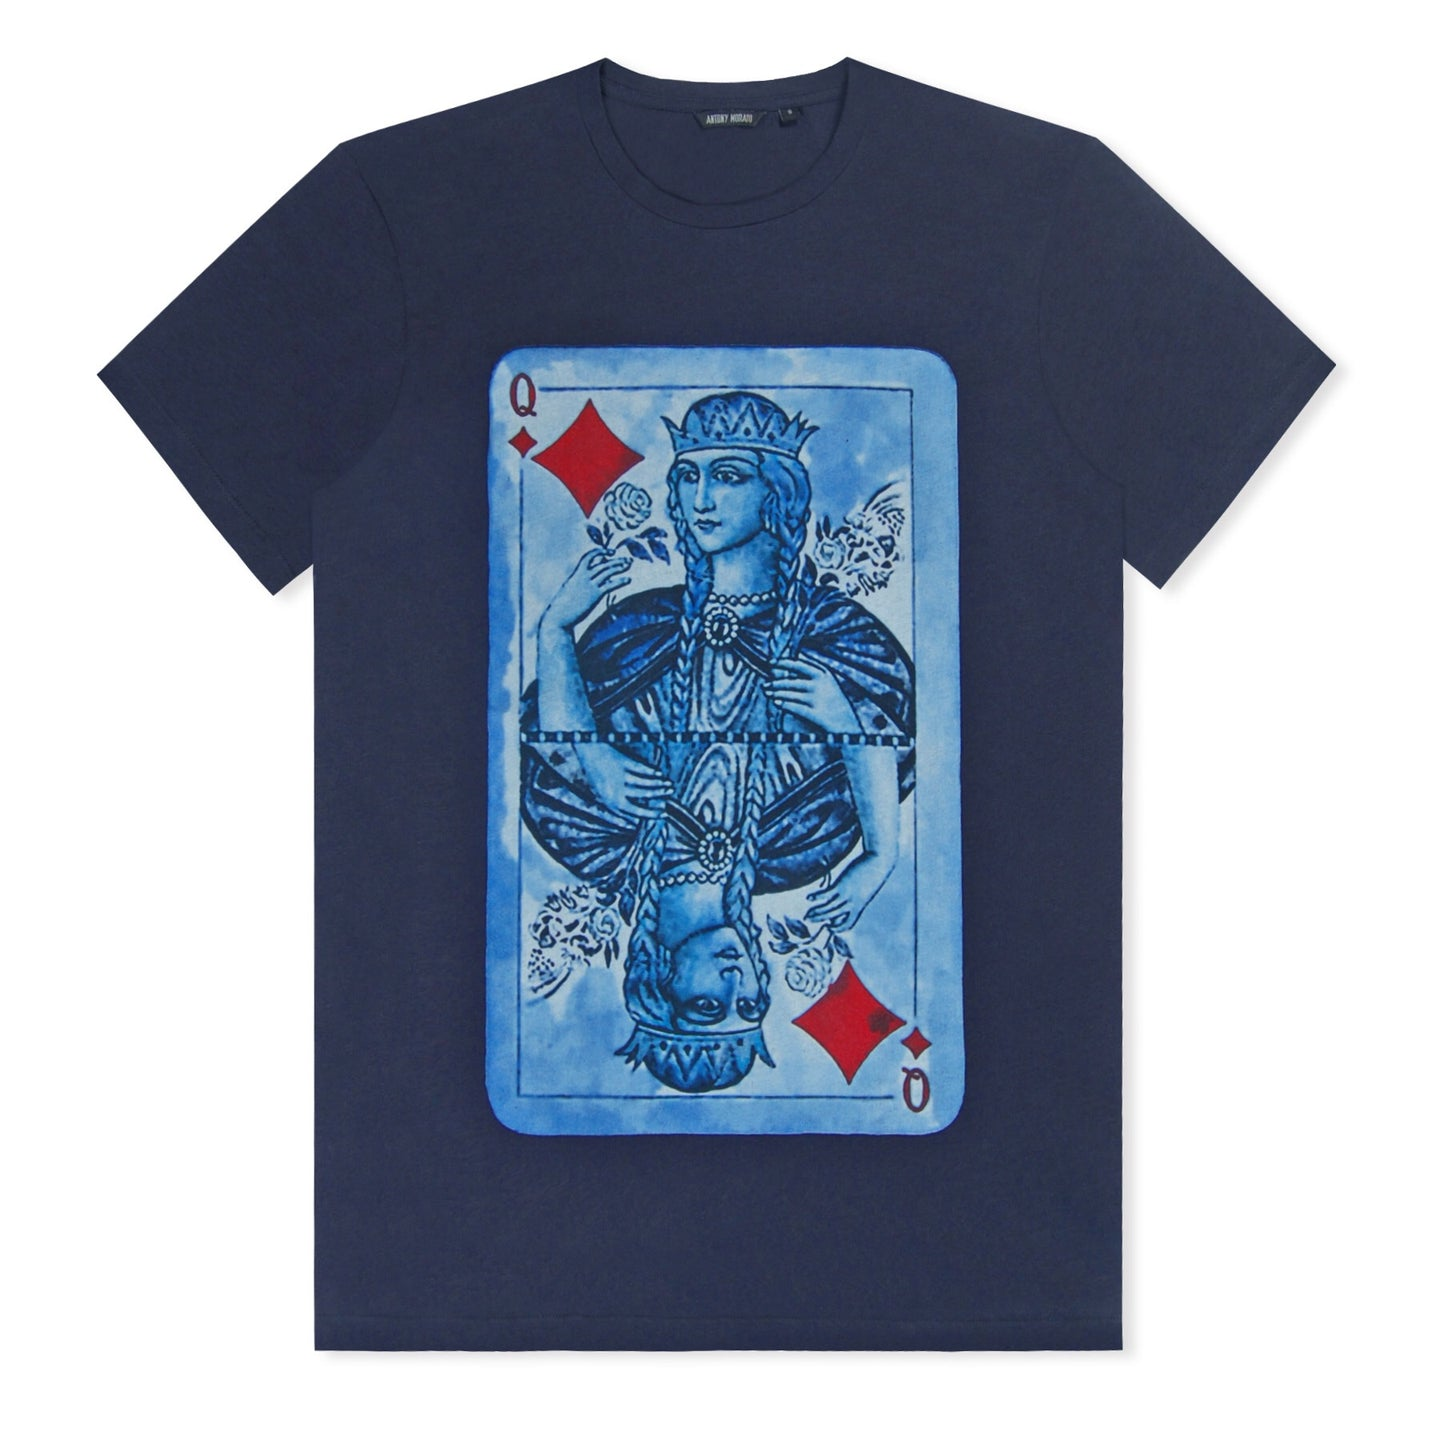 Night Blue Antony Morato Playing Card T-Shirt